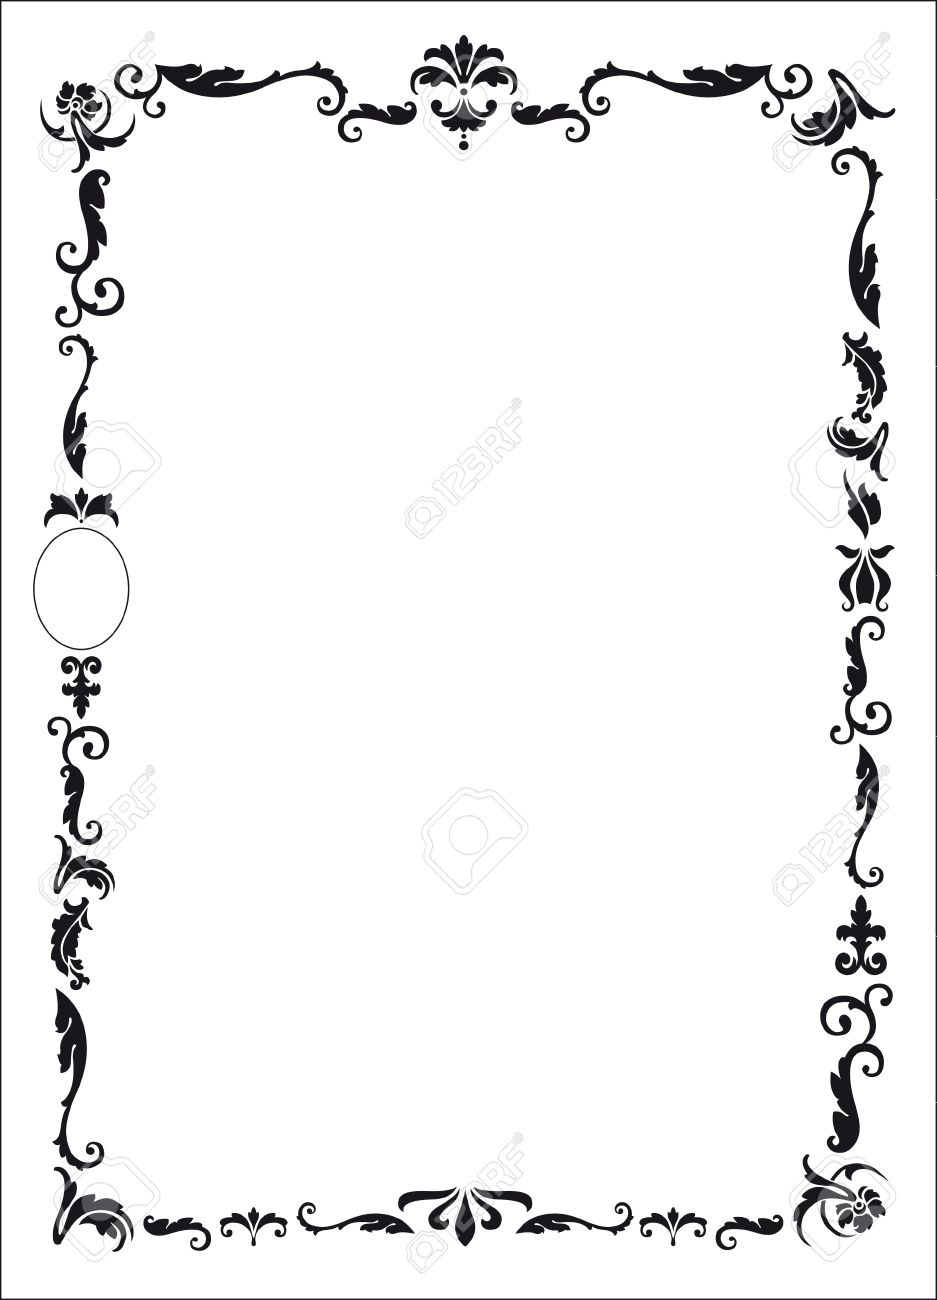 Graduation Frame Royalty Free Cliparts, Vectors, And Stock ...